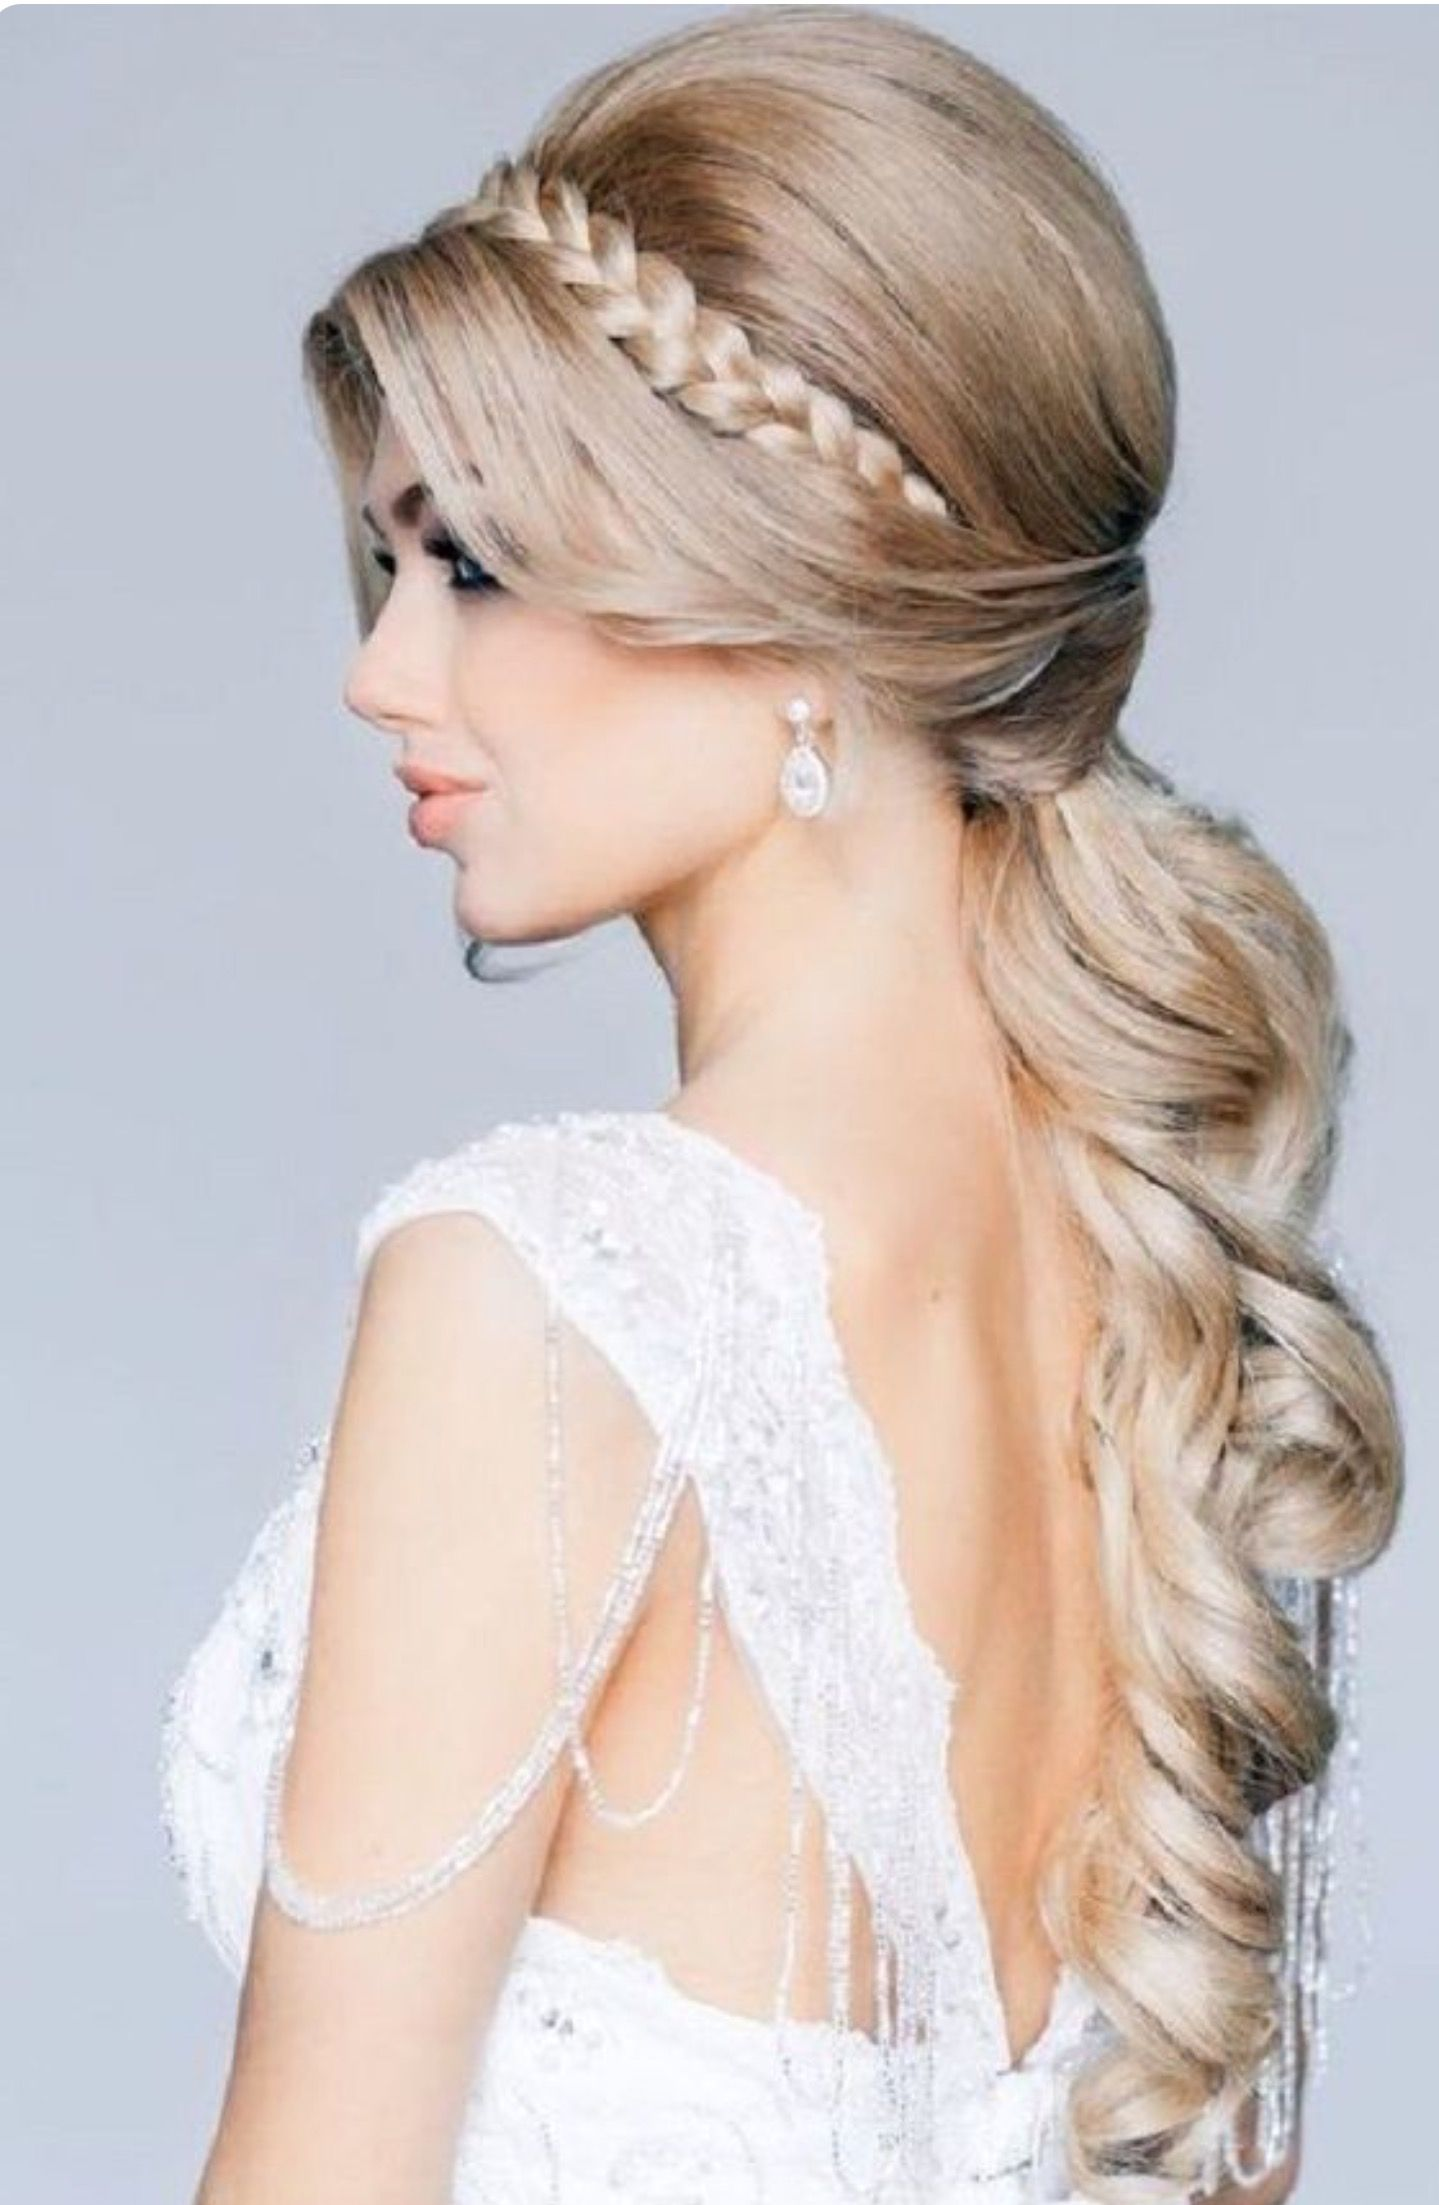 Pin by sewell crew on home special event make up hair etc pinterest